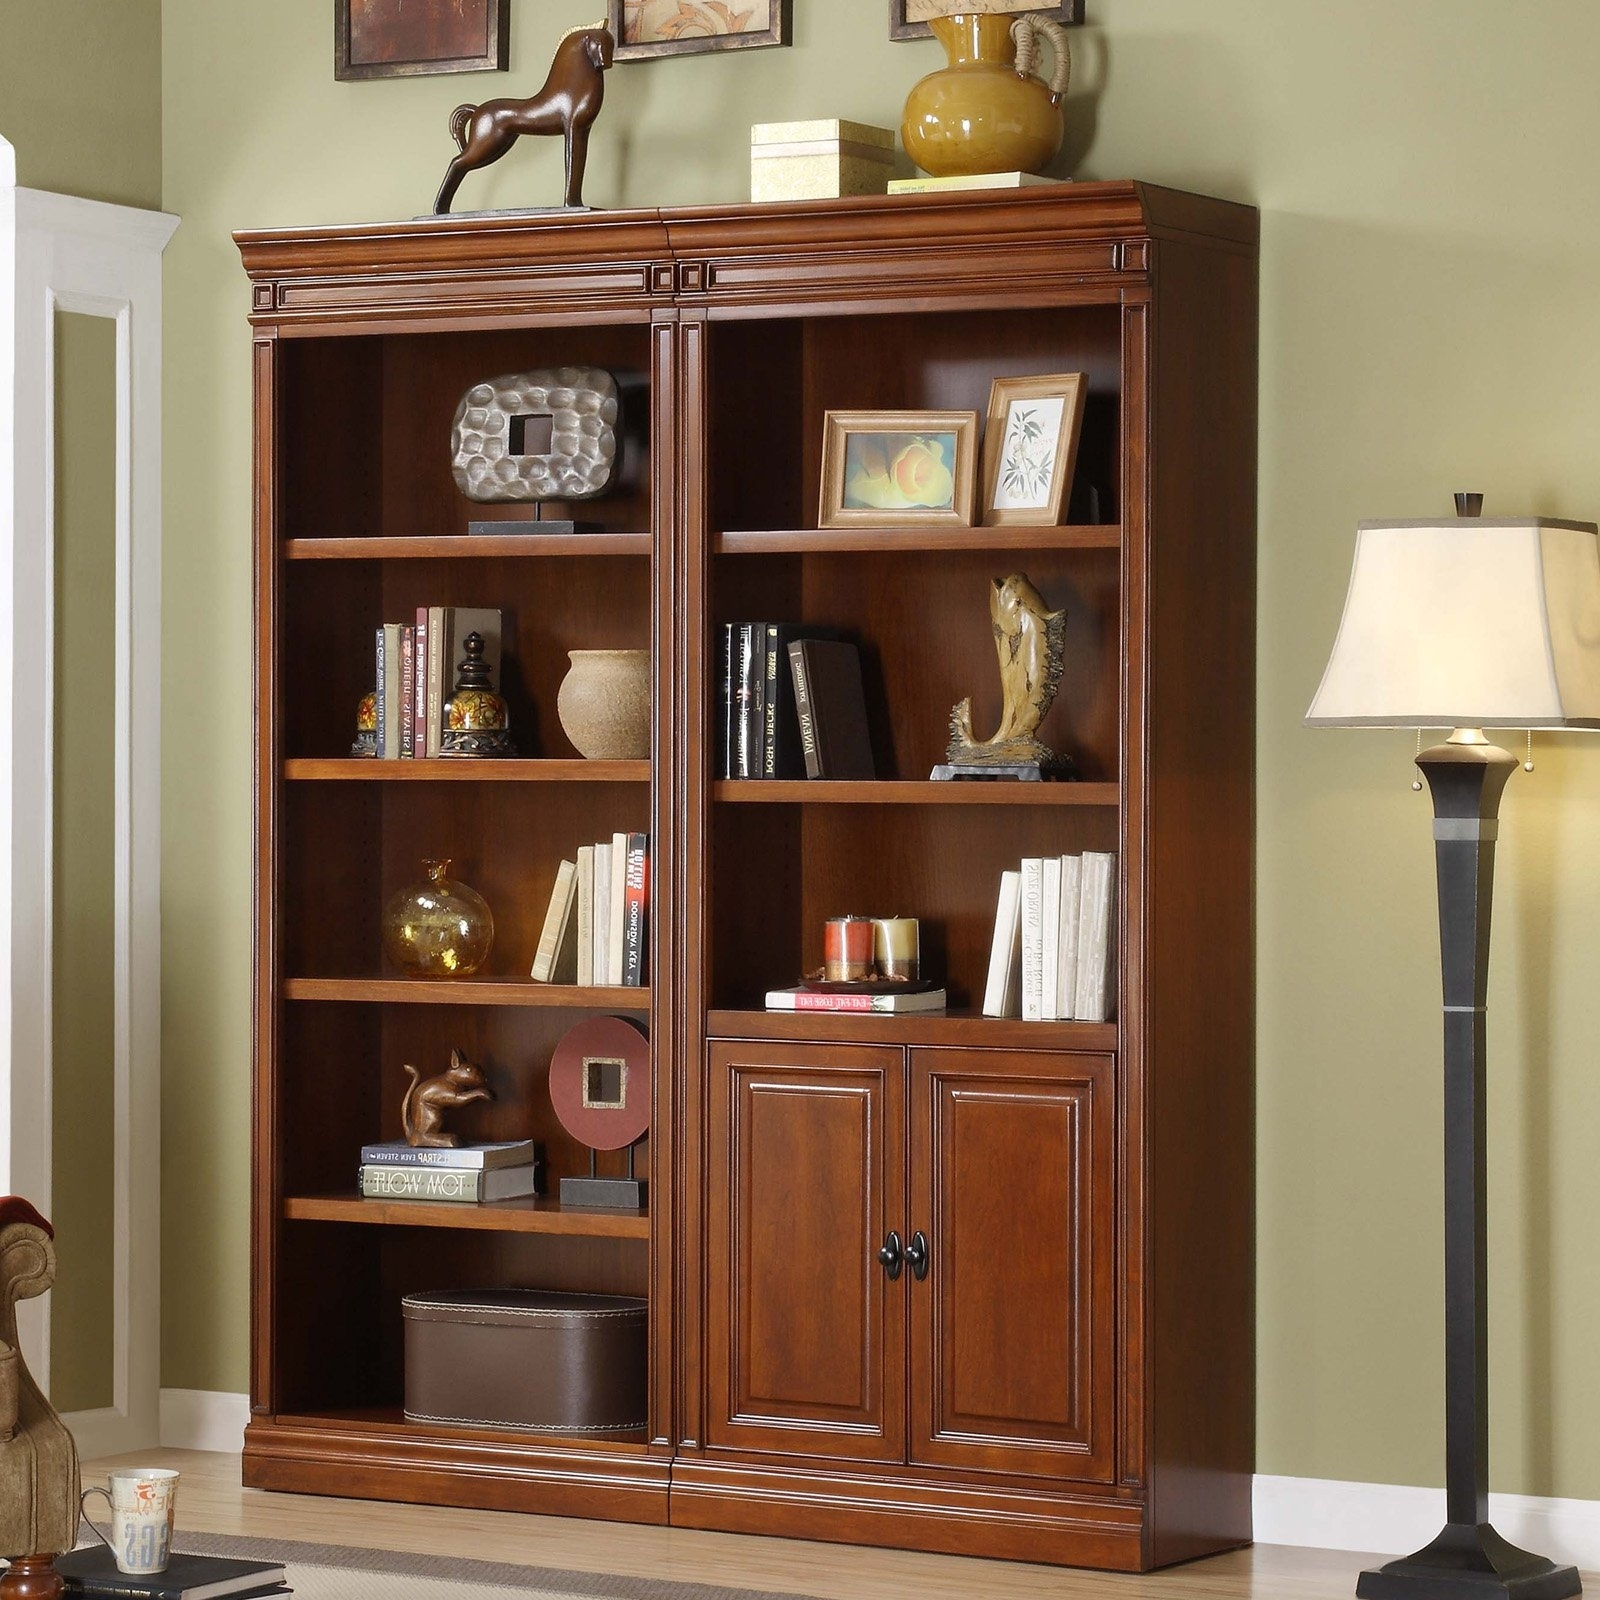 Office Bookcases With Regard To Famous Furniture Home: New Office Bookcase With Doors Decorating Design (View 7 of 15)